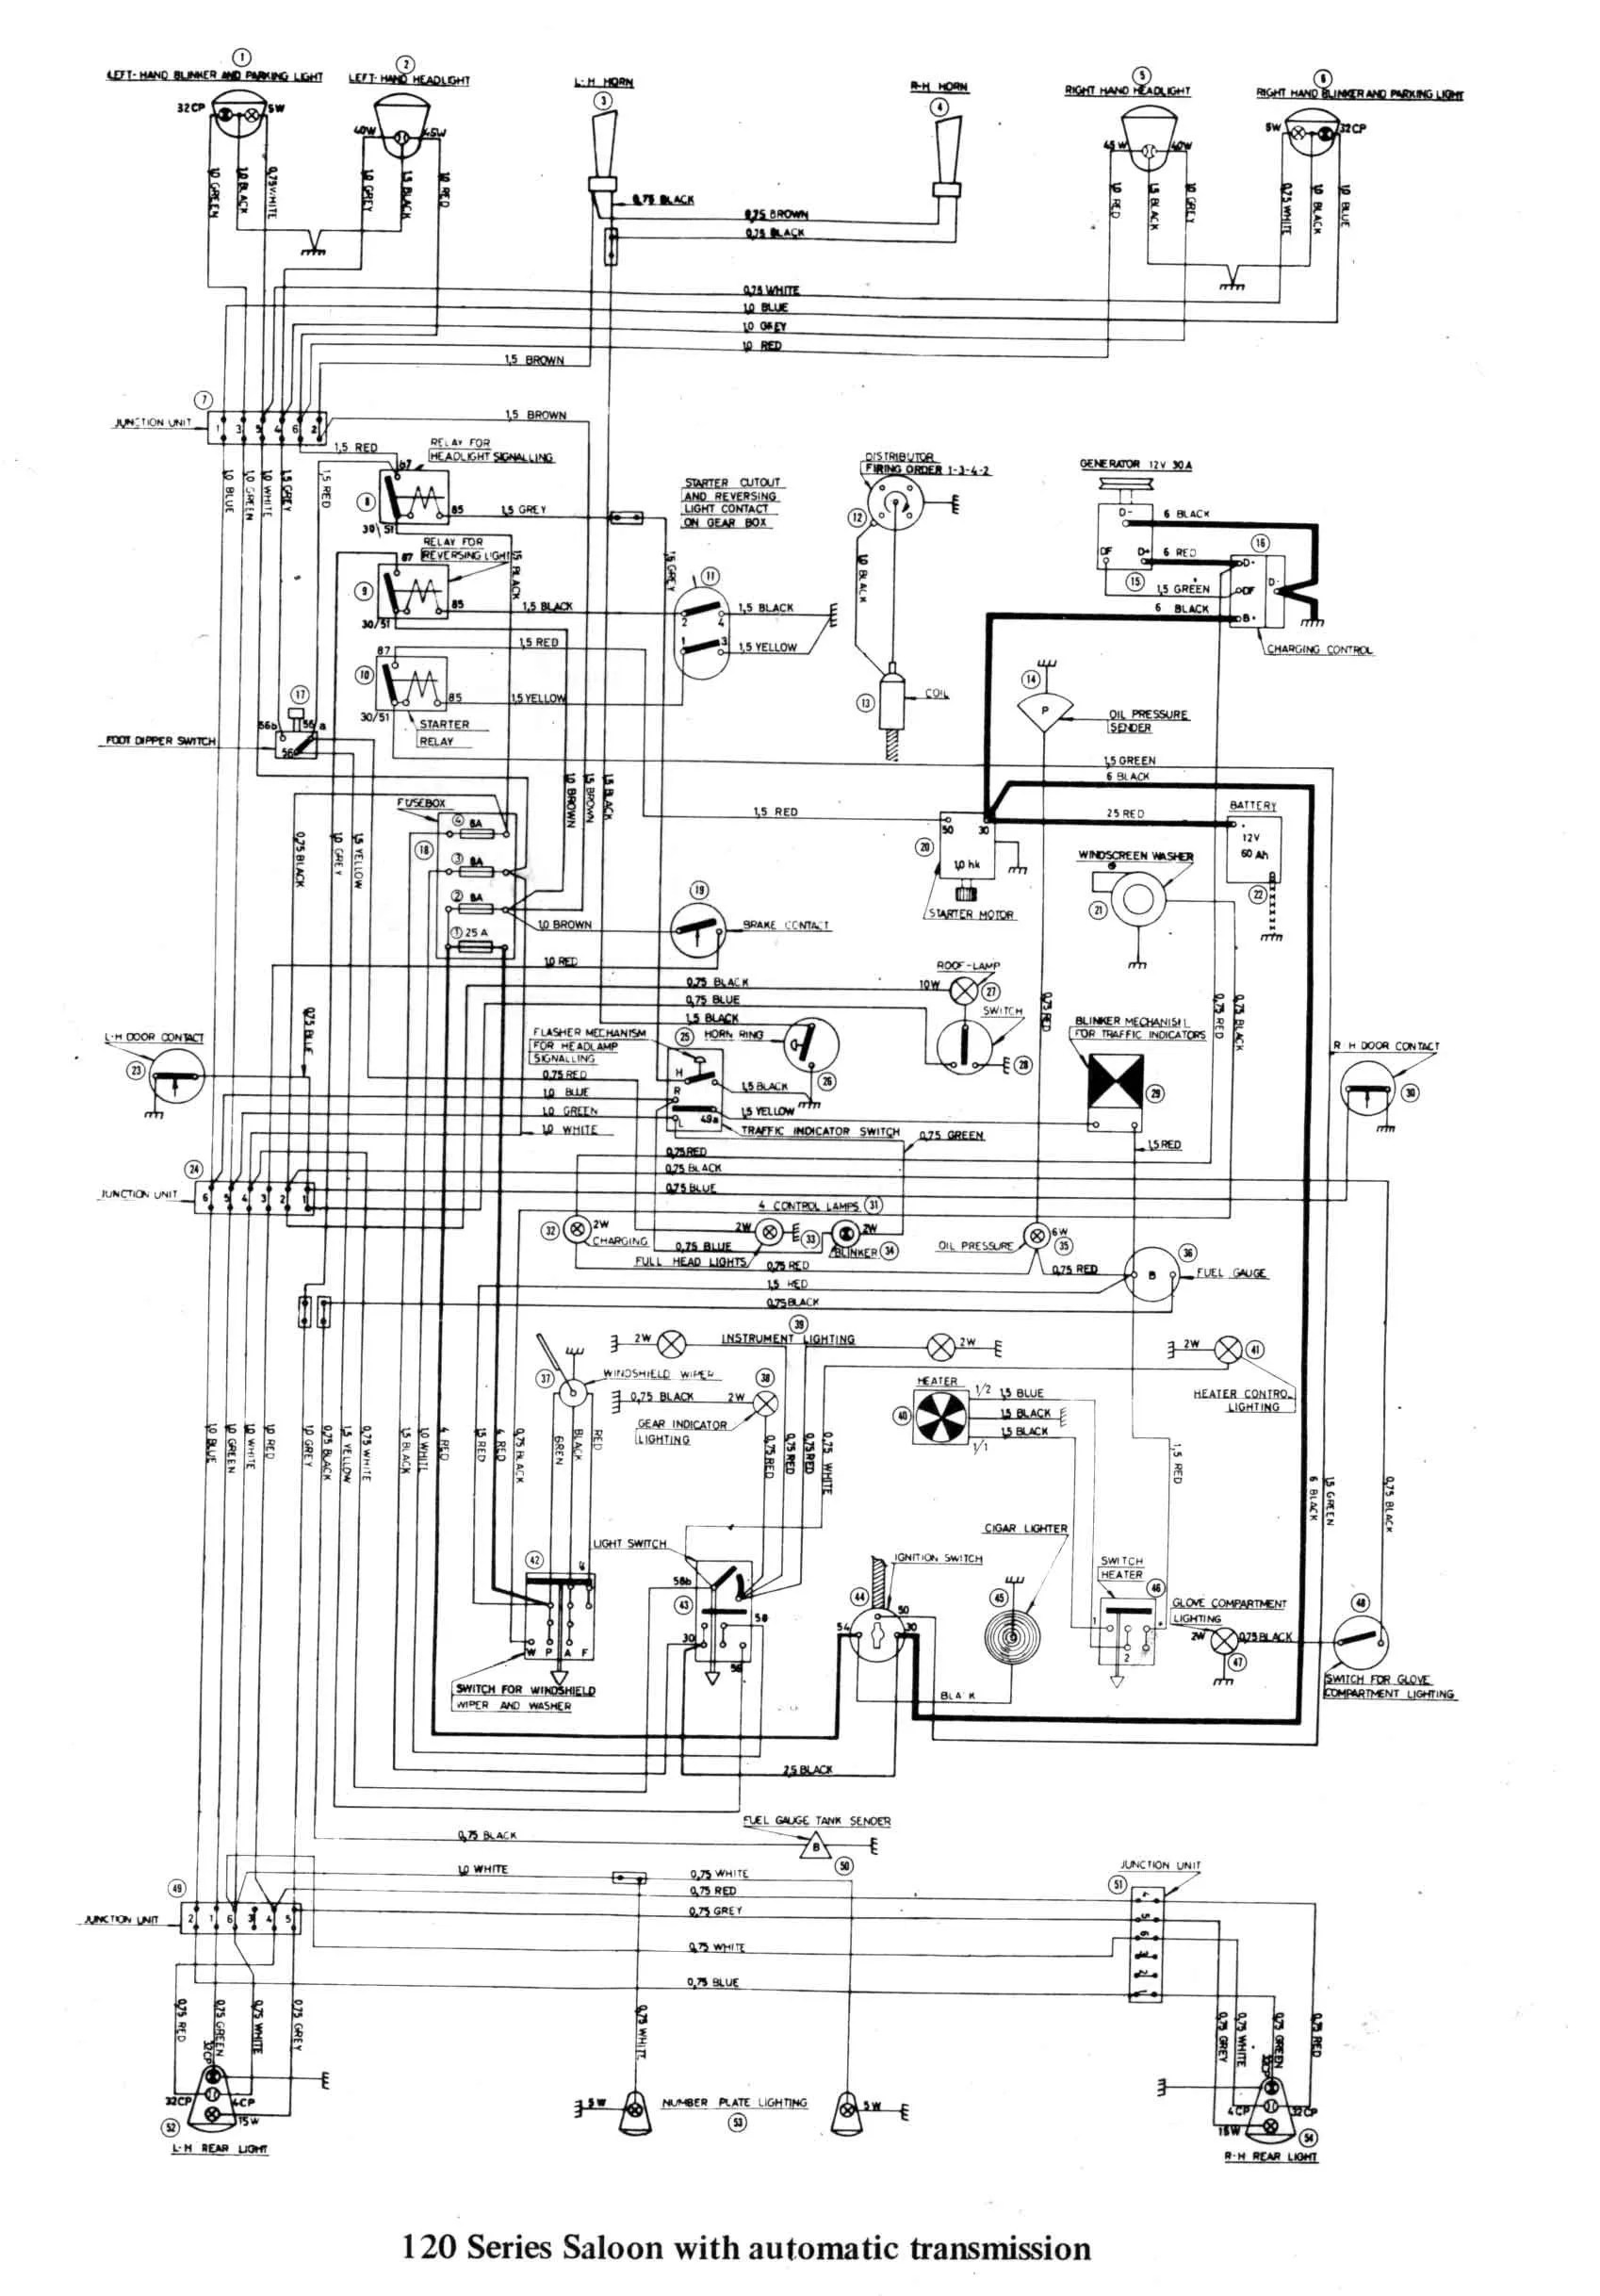 hight resolution of 98 ac wiring diagram extended wiring diagram 98 honda civic ac wiring diagram 98 ac wiring diagram